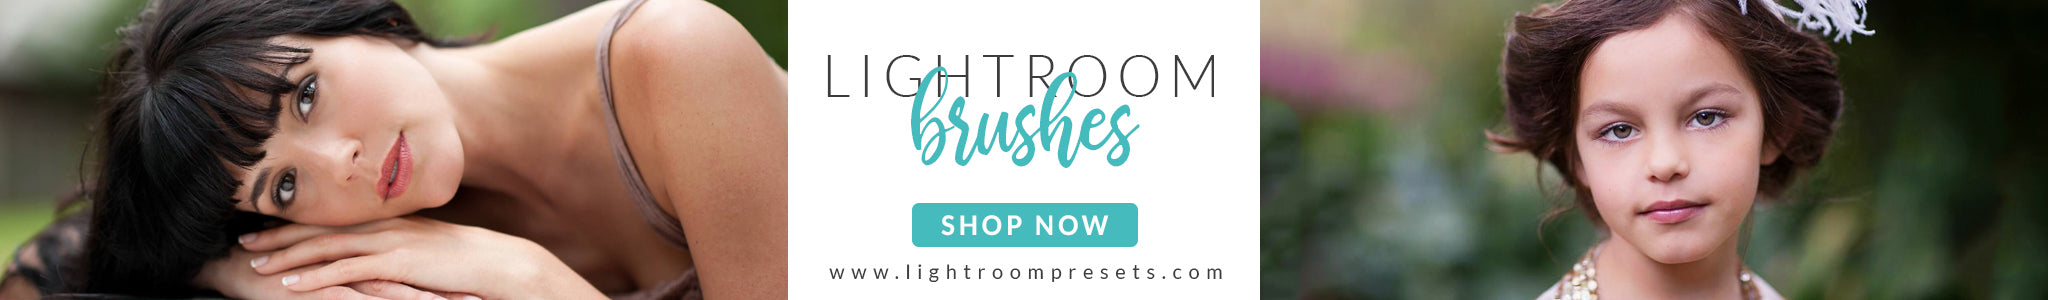 Lightroom Presets and Brushes